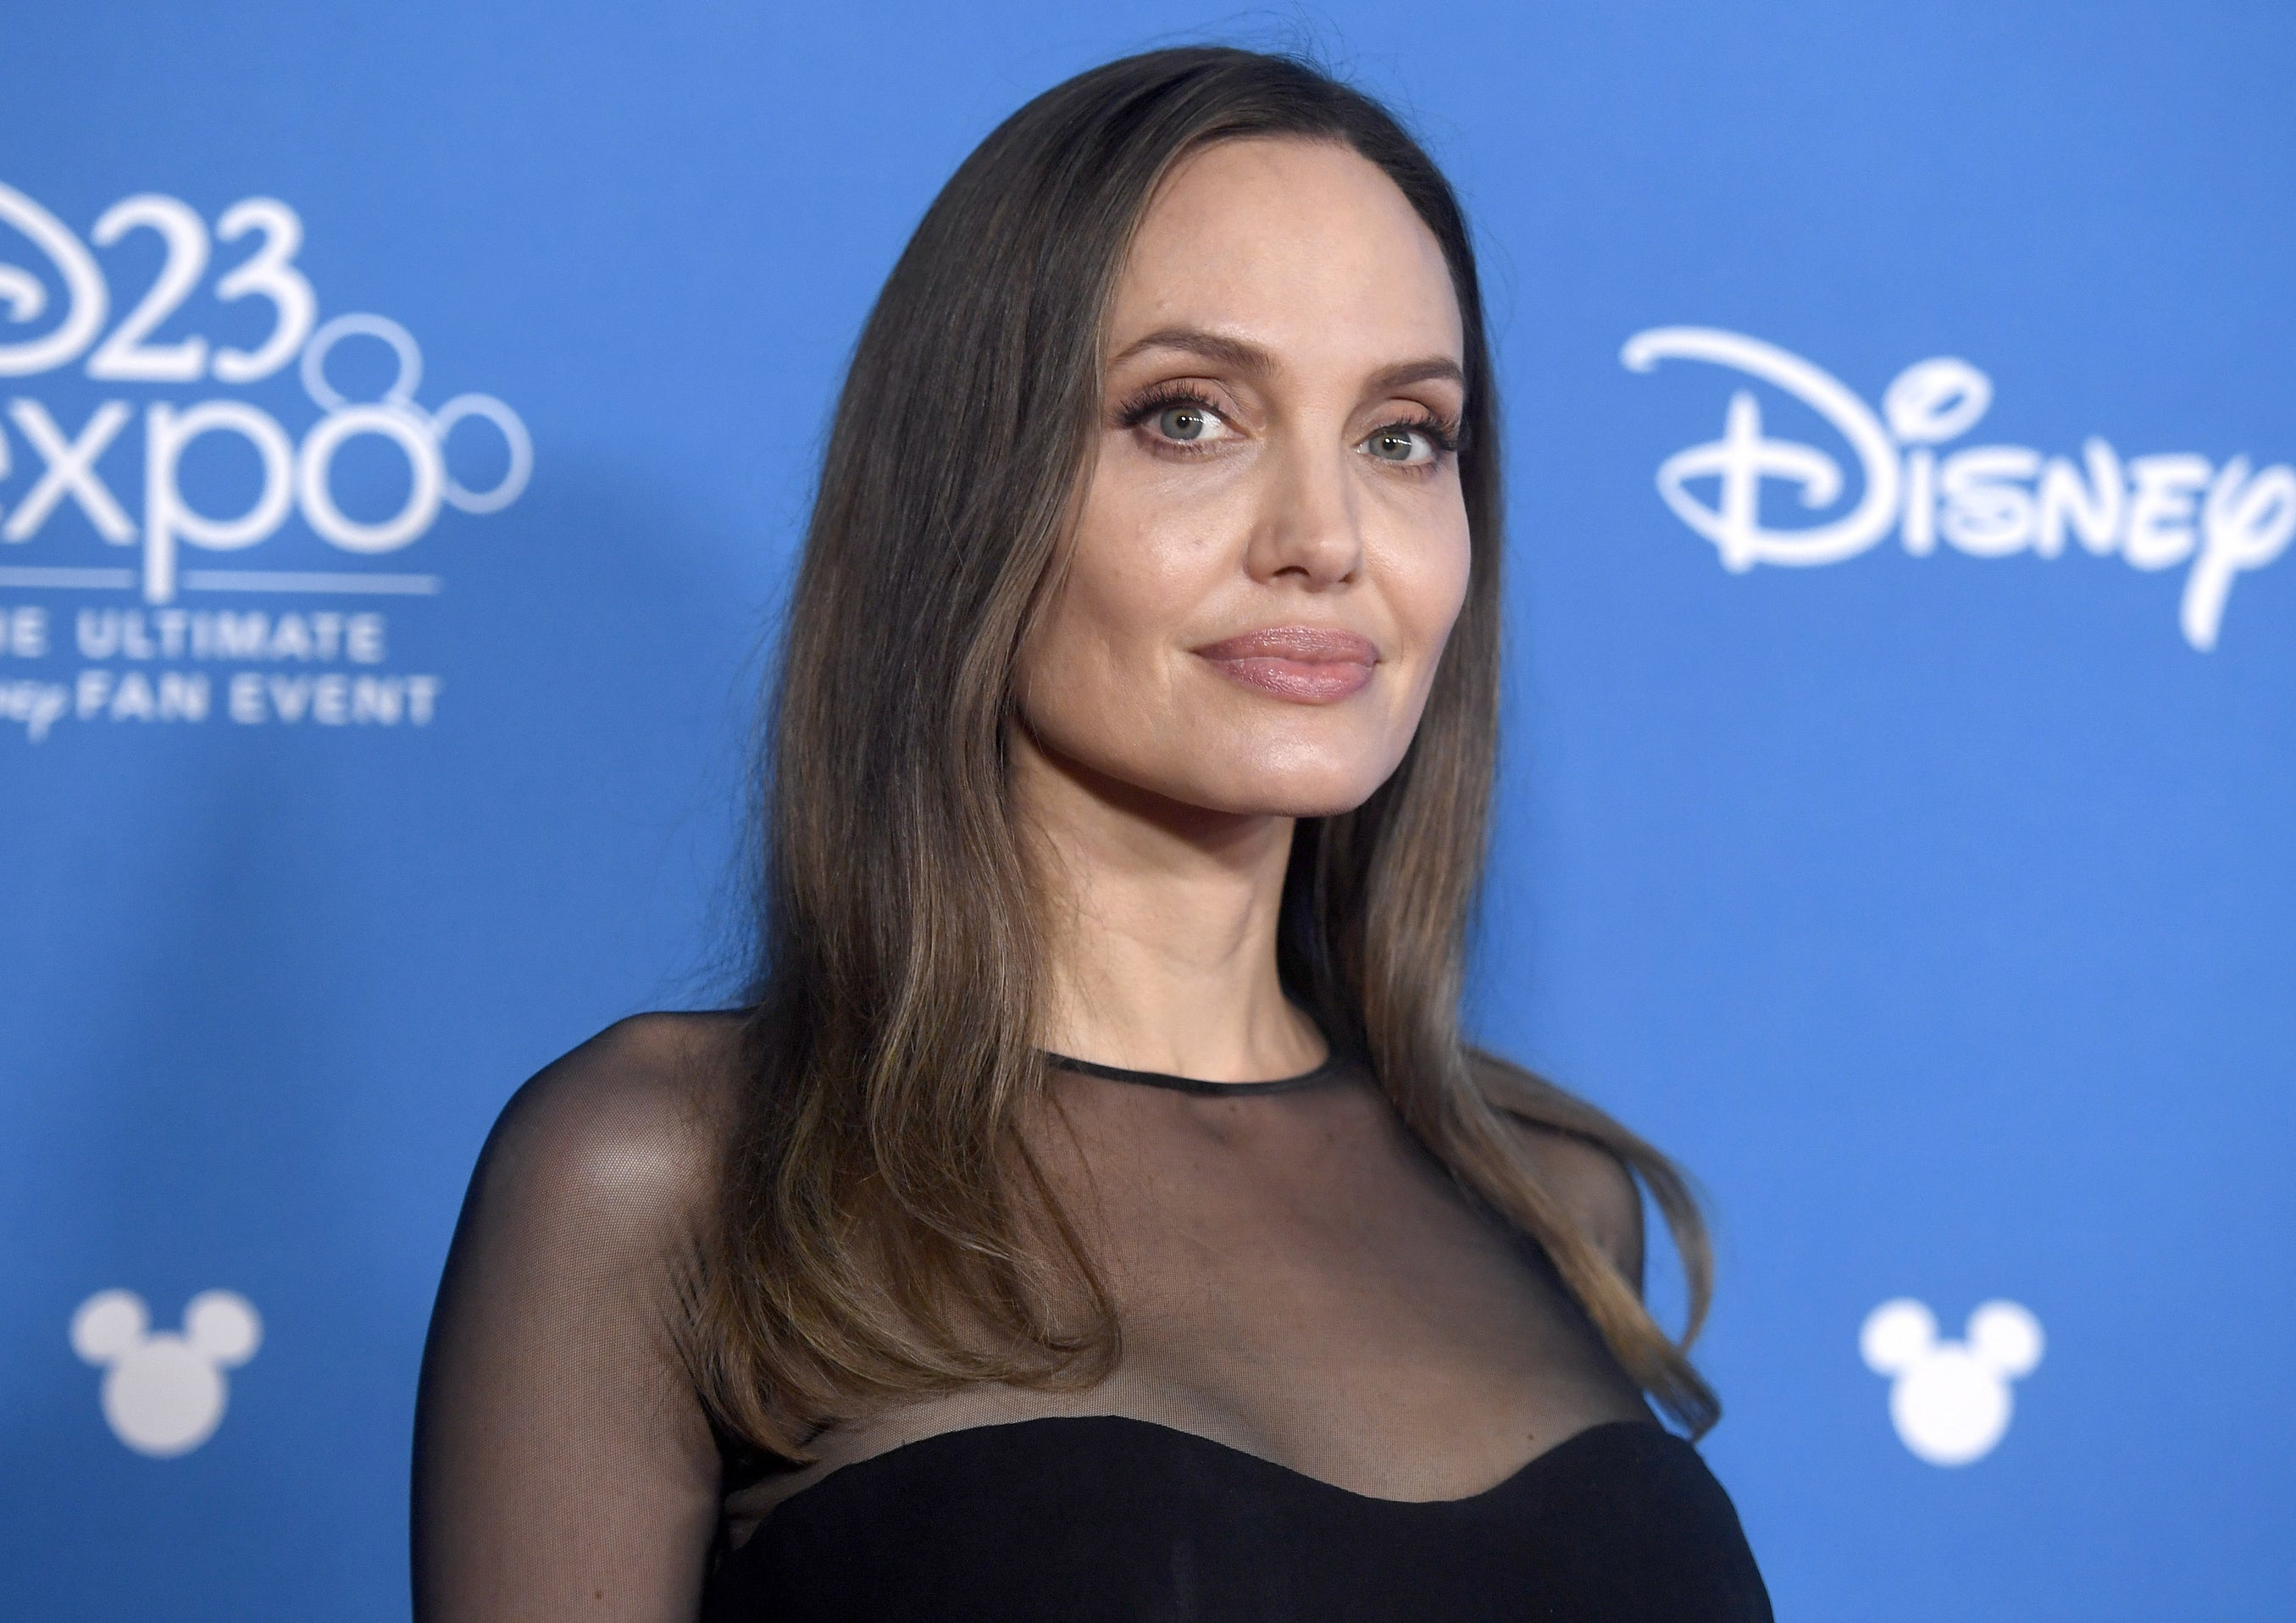 Angelina wears a sheer black top to an event